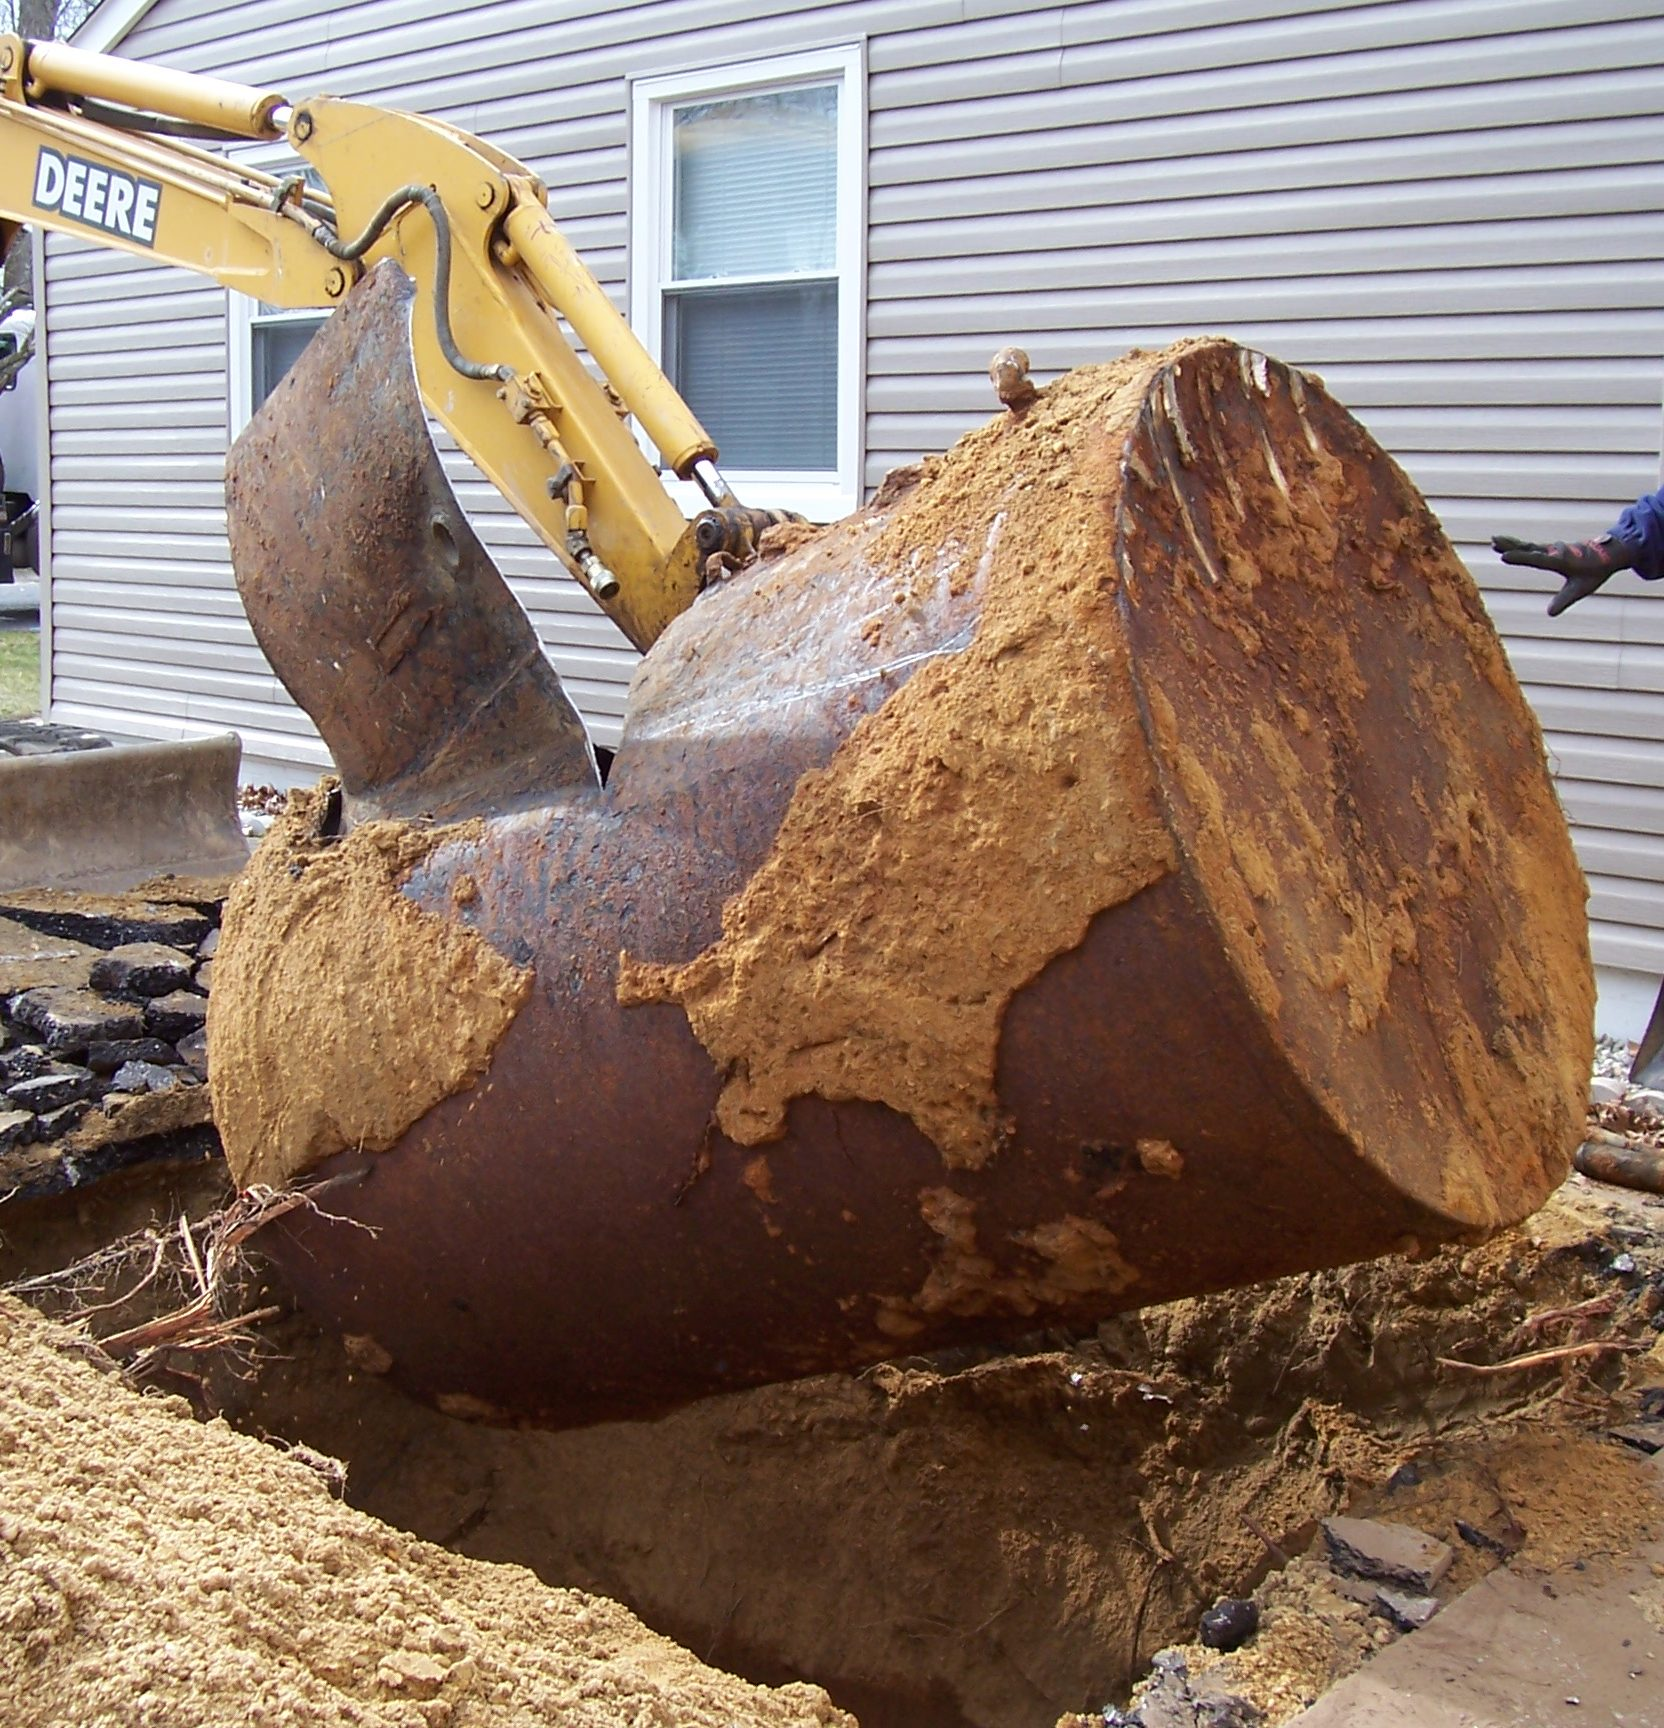 Removal of an underground storage tank at a private residence